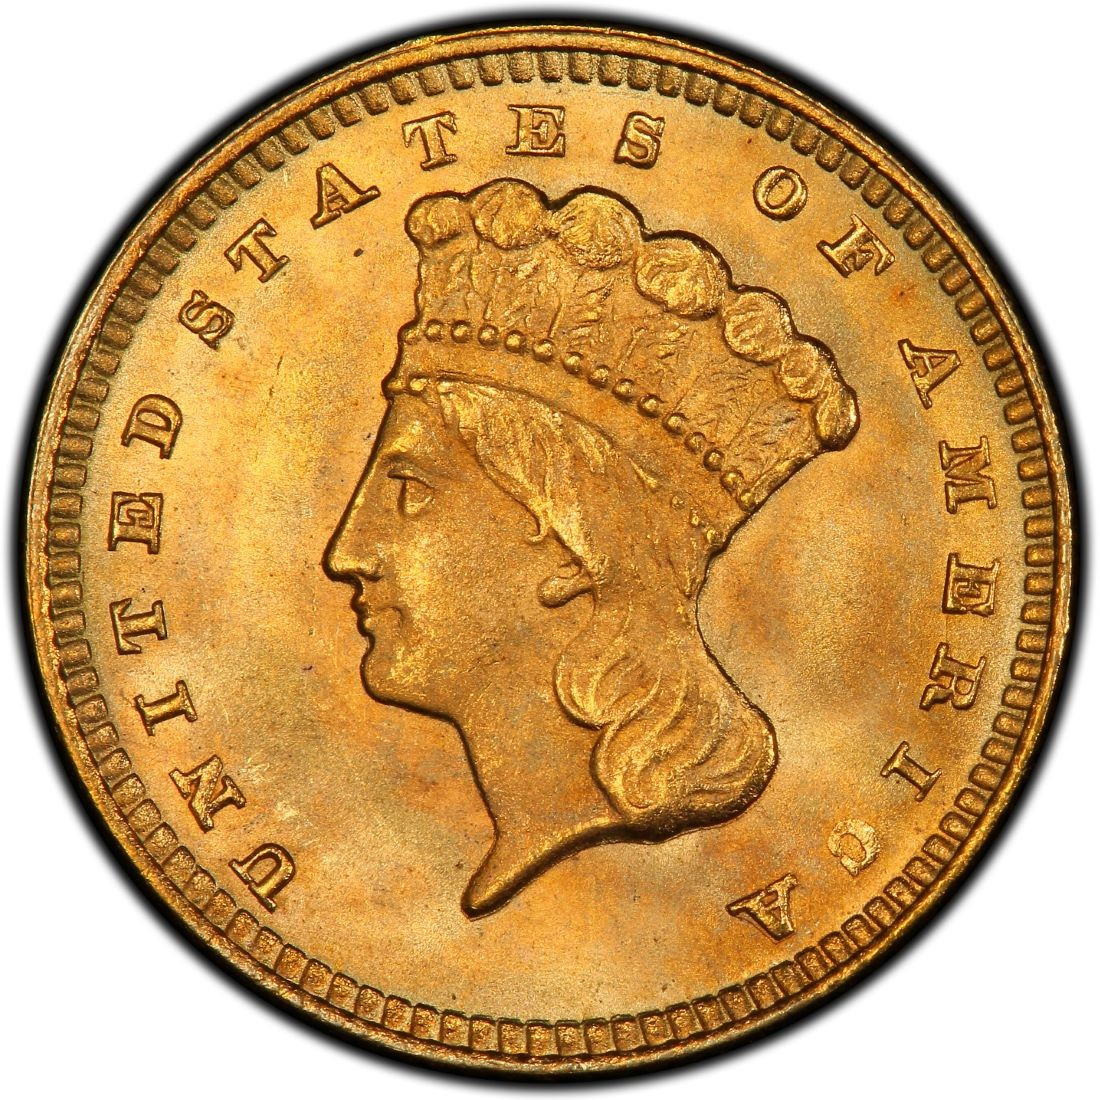 1874 Large Head Indian Princess Gold Dollar Values And